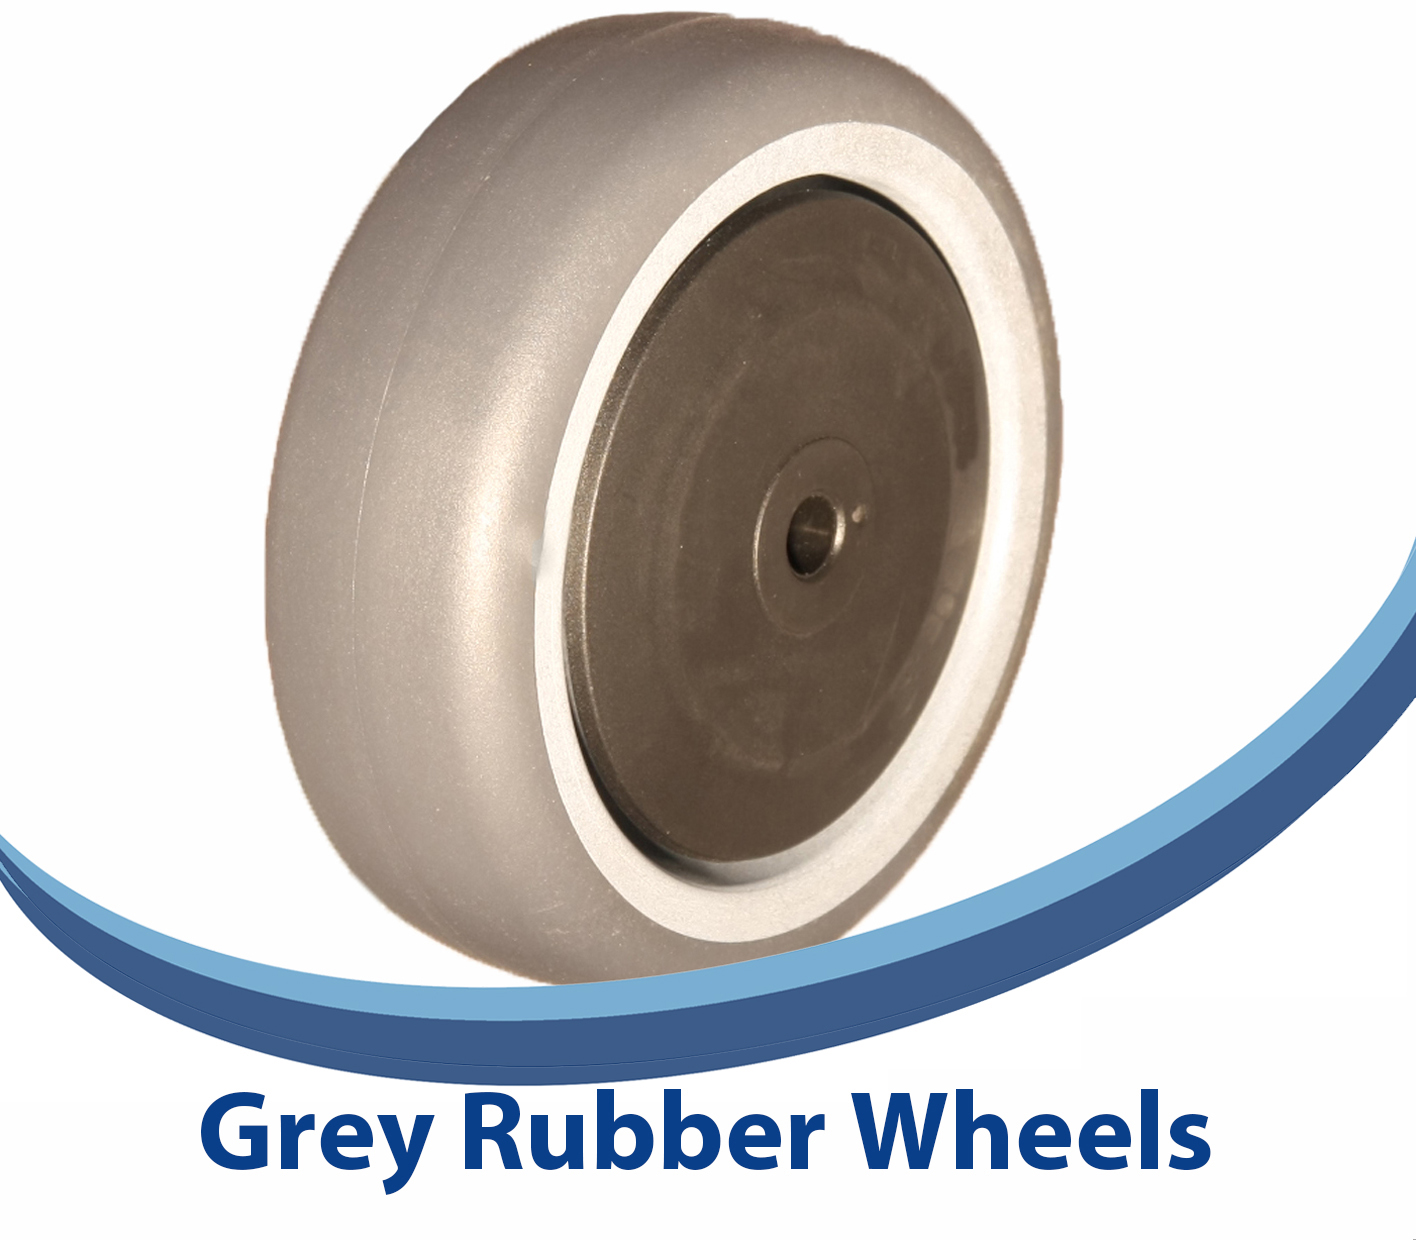 Grey Rubber Wheels